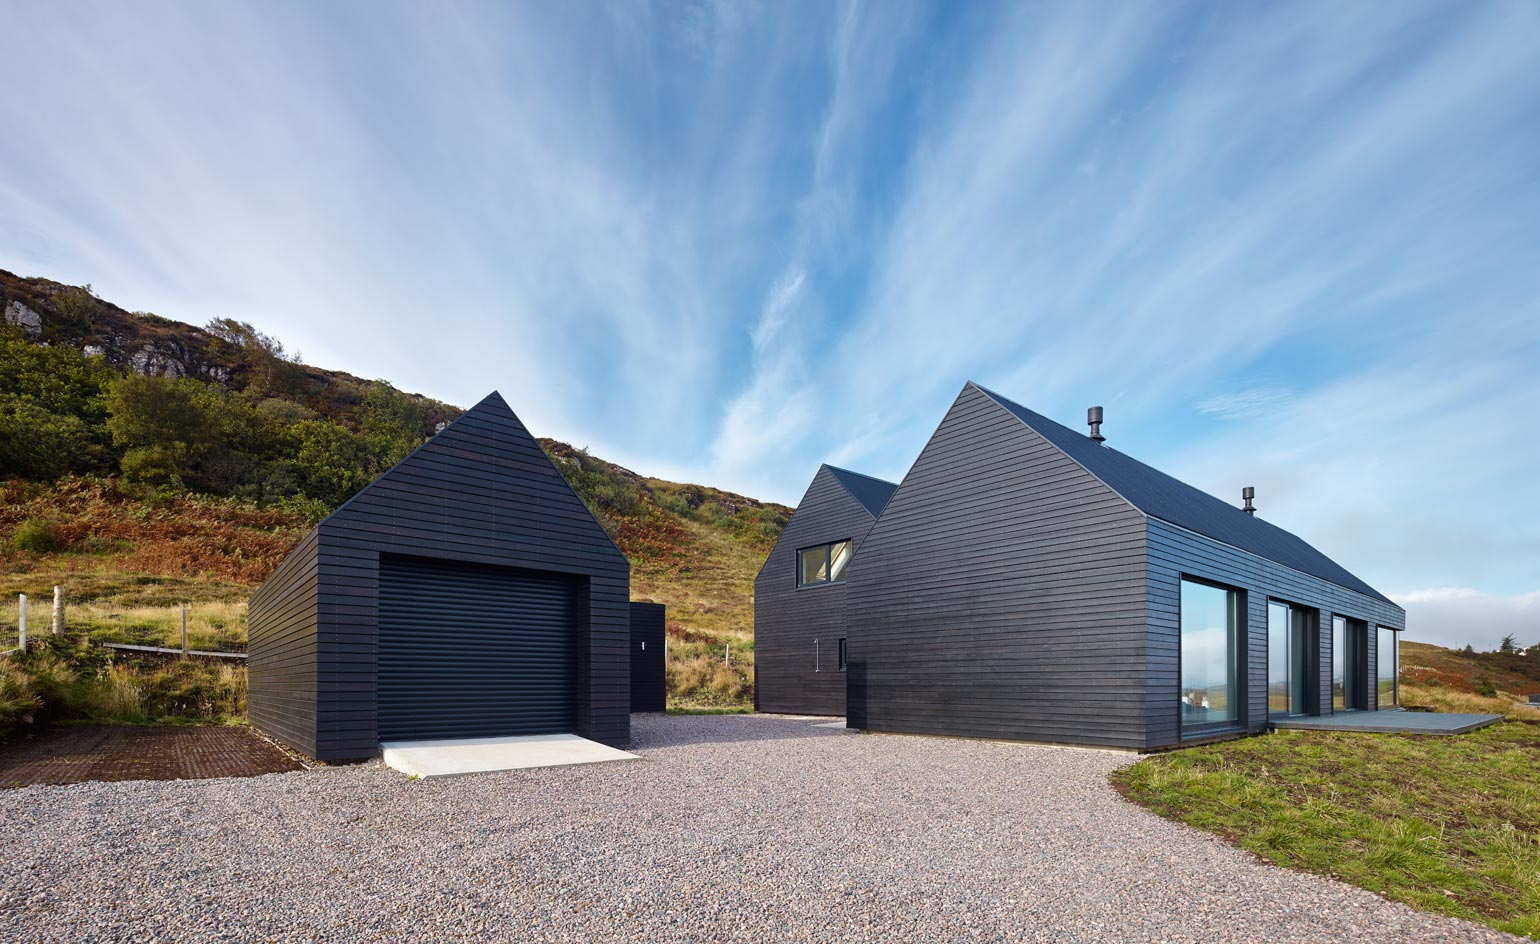 Colbost house dualchas architects reinvent the scottish black shed on the isle of skye wallpaper - Casas rurales escocia ...